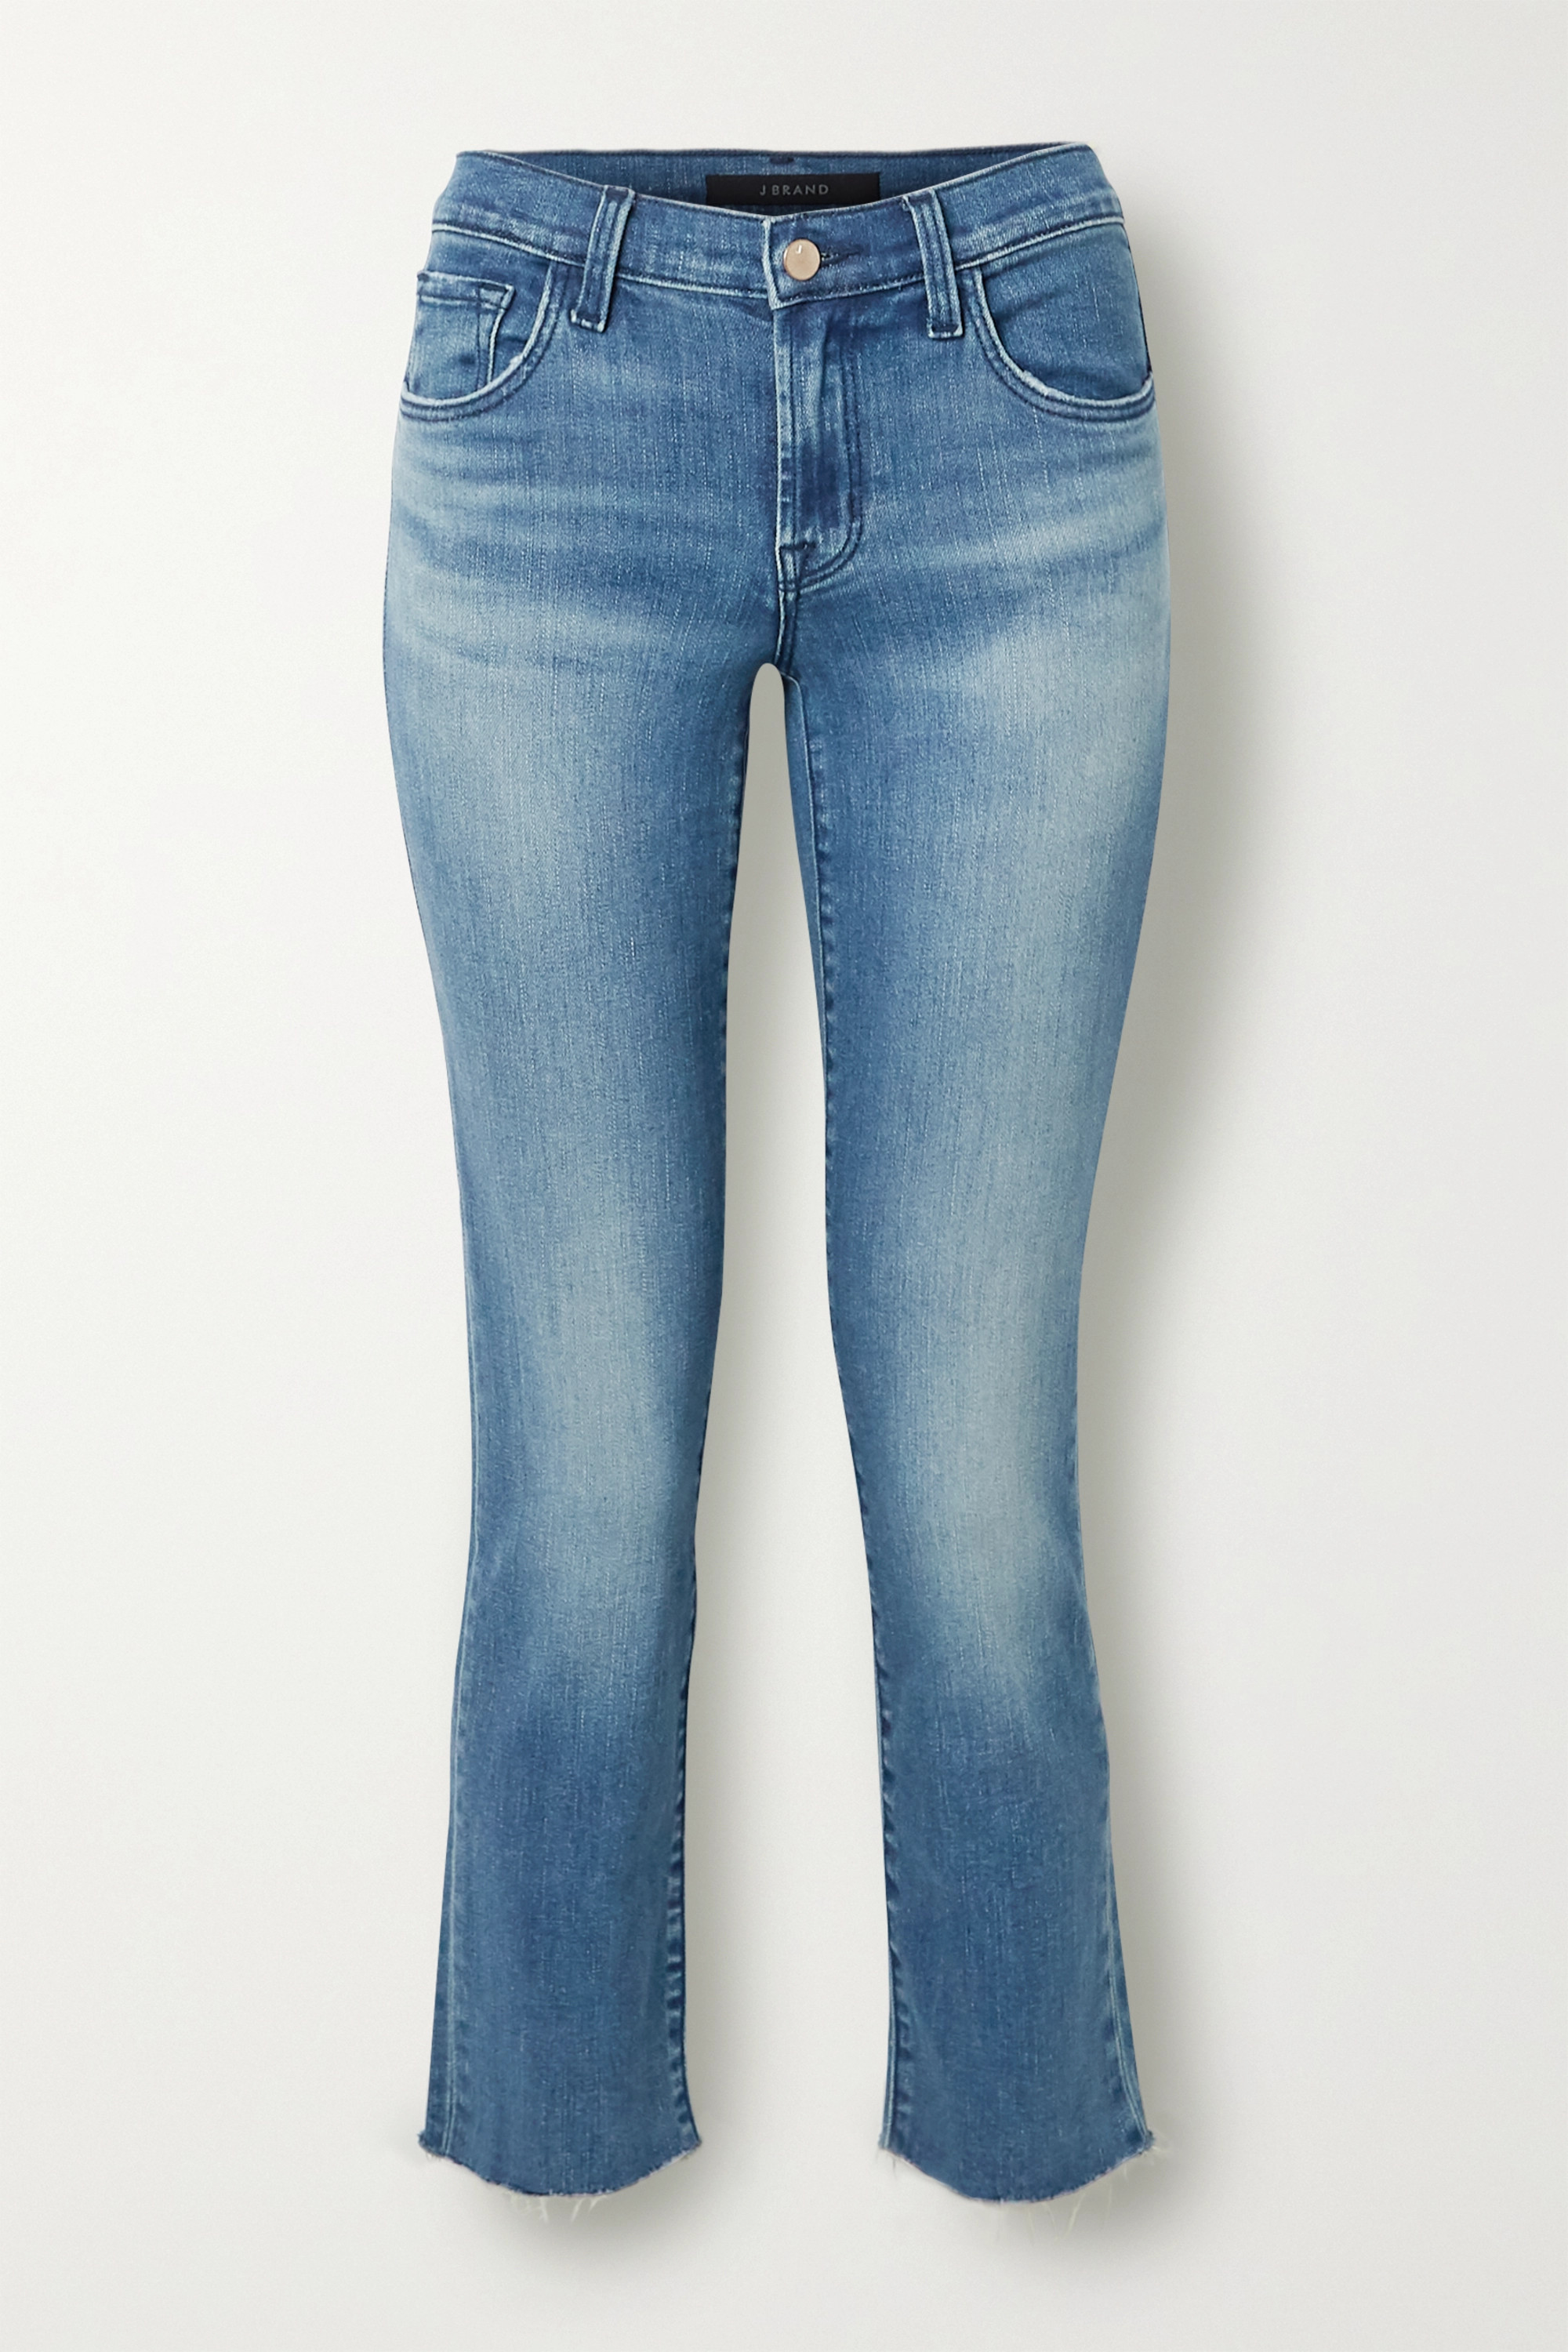 J Brand Adele cropped distressed high-rise slim-leg jeans